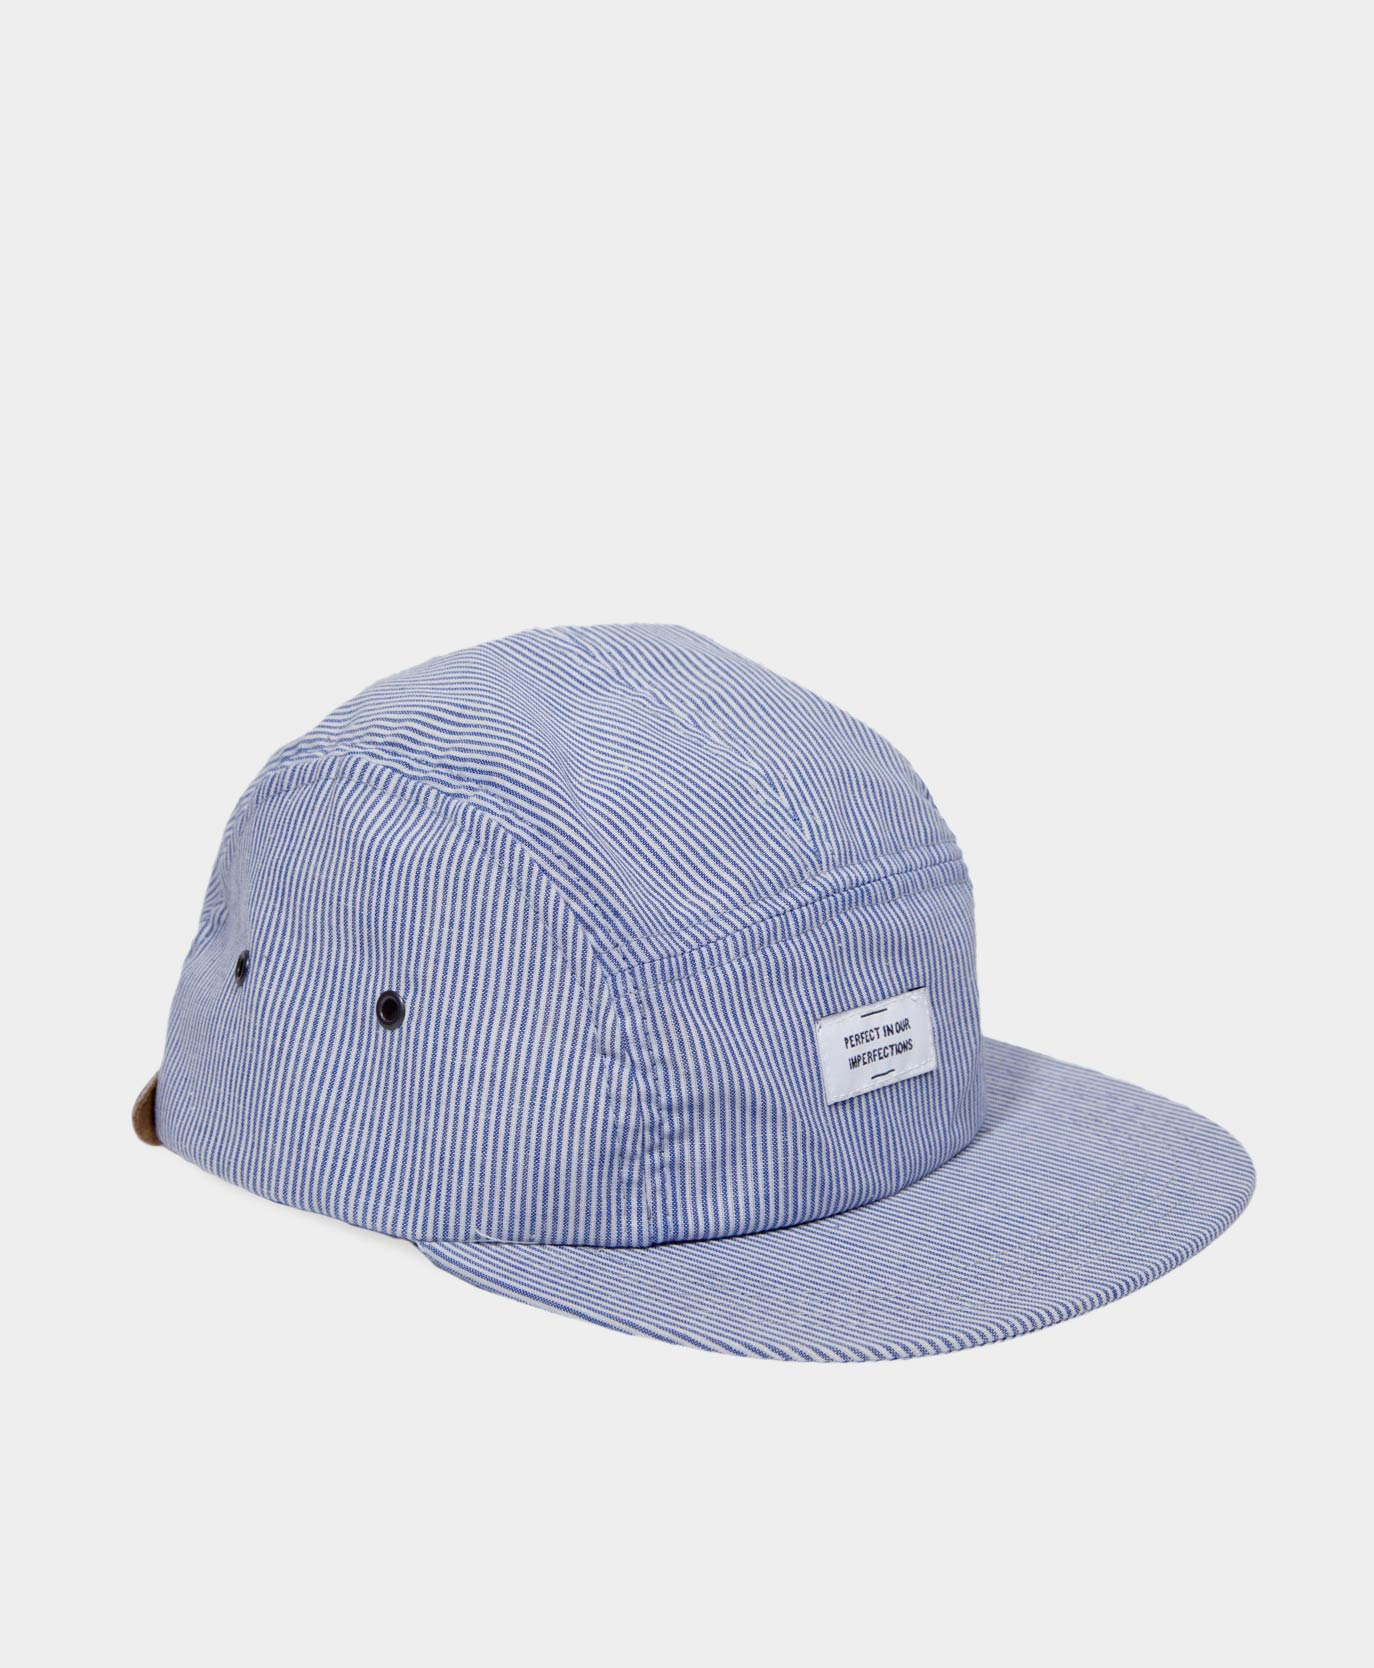 Image of The Oxford Cap